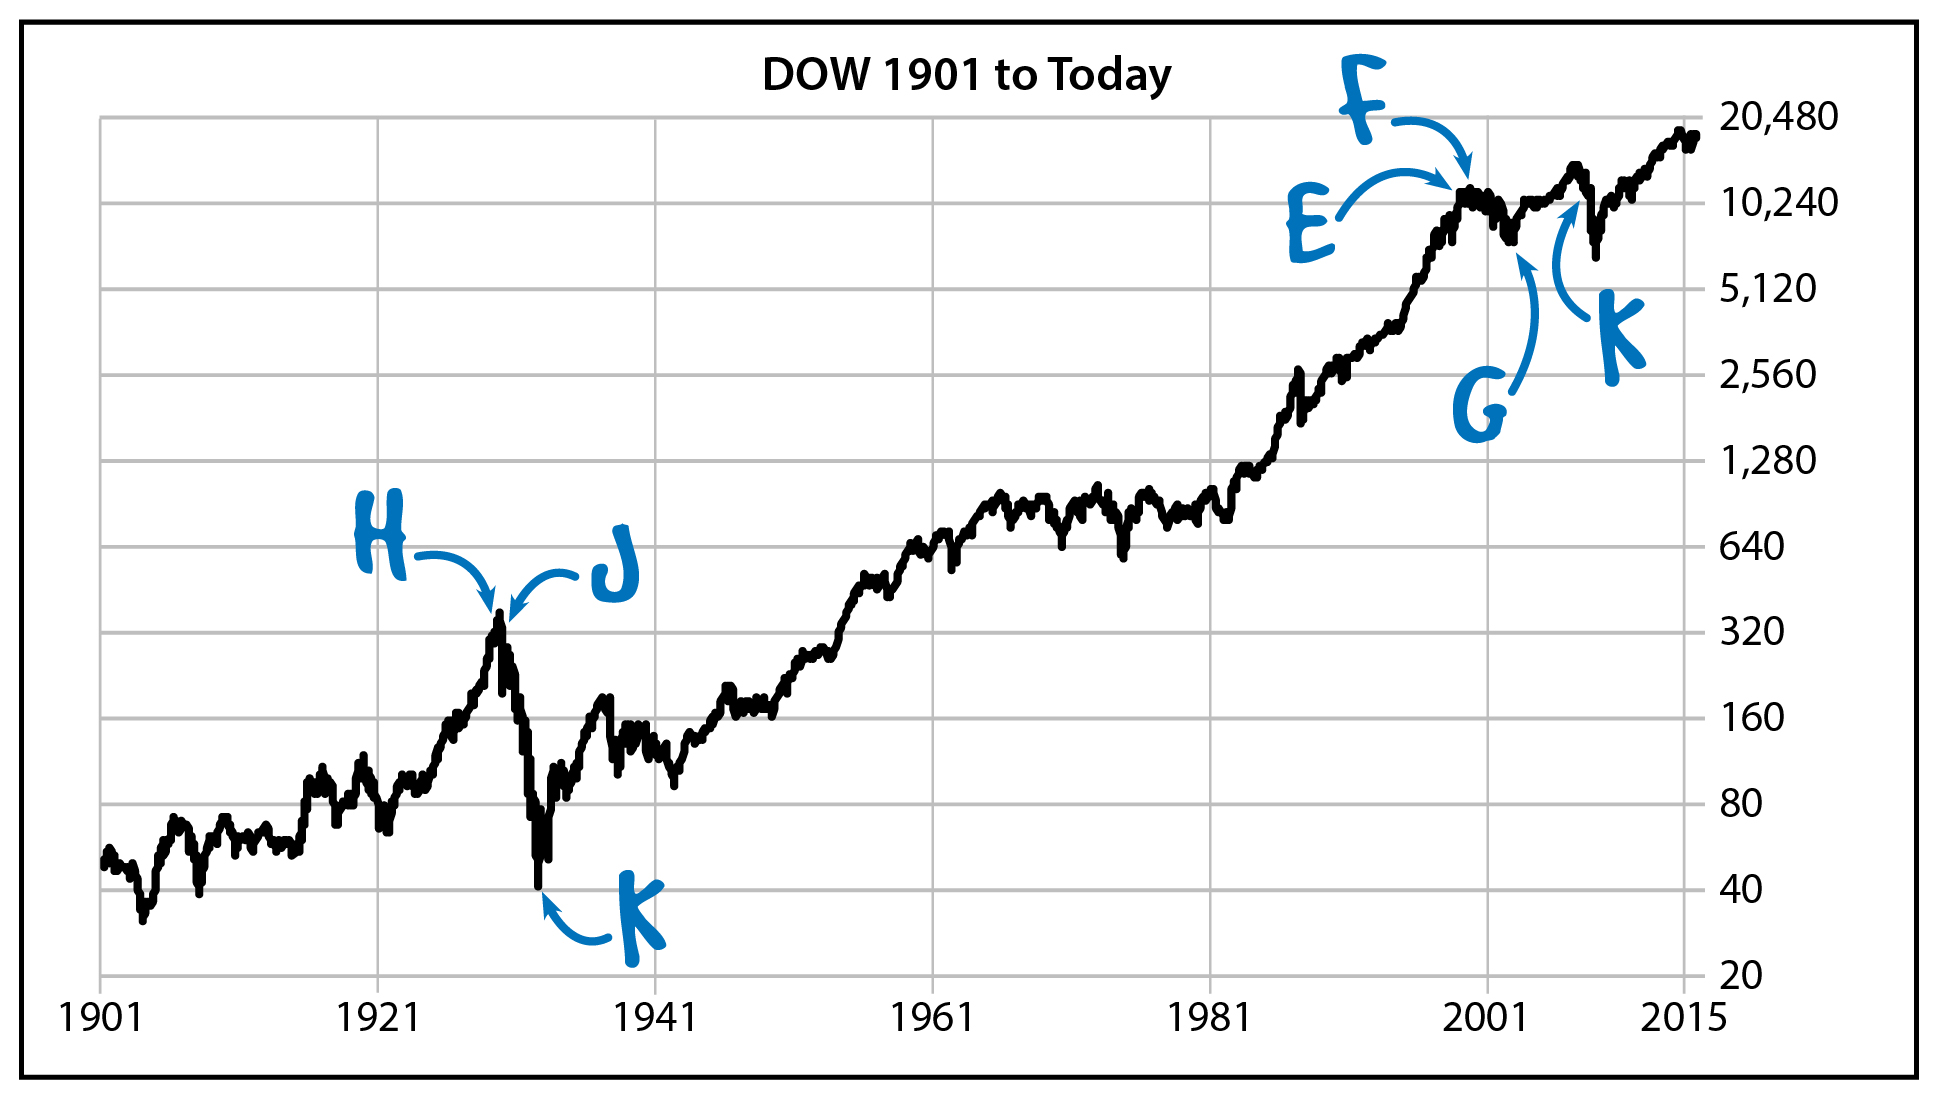 Dow 1901 to Today